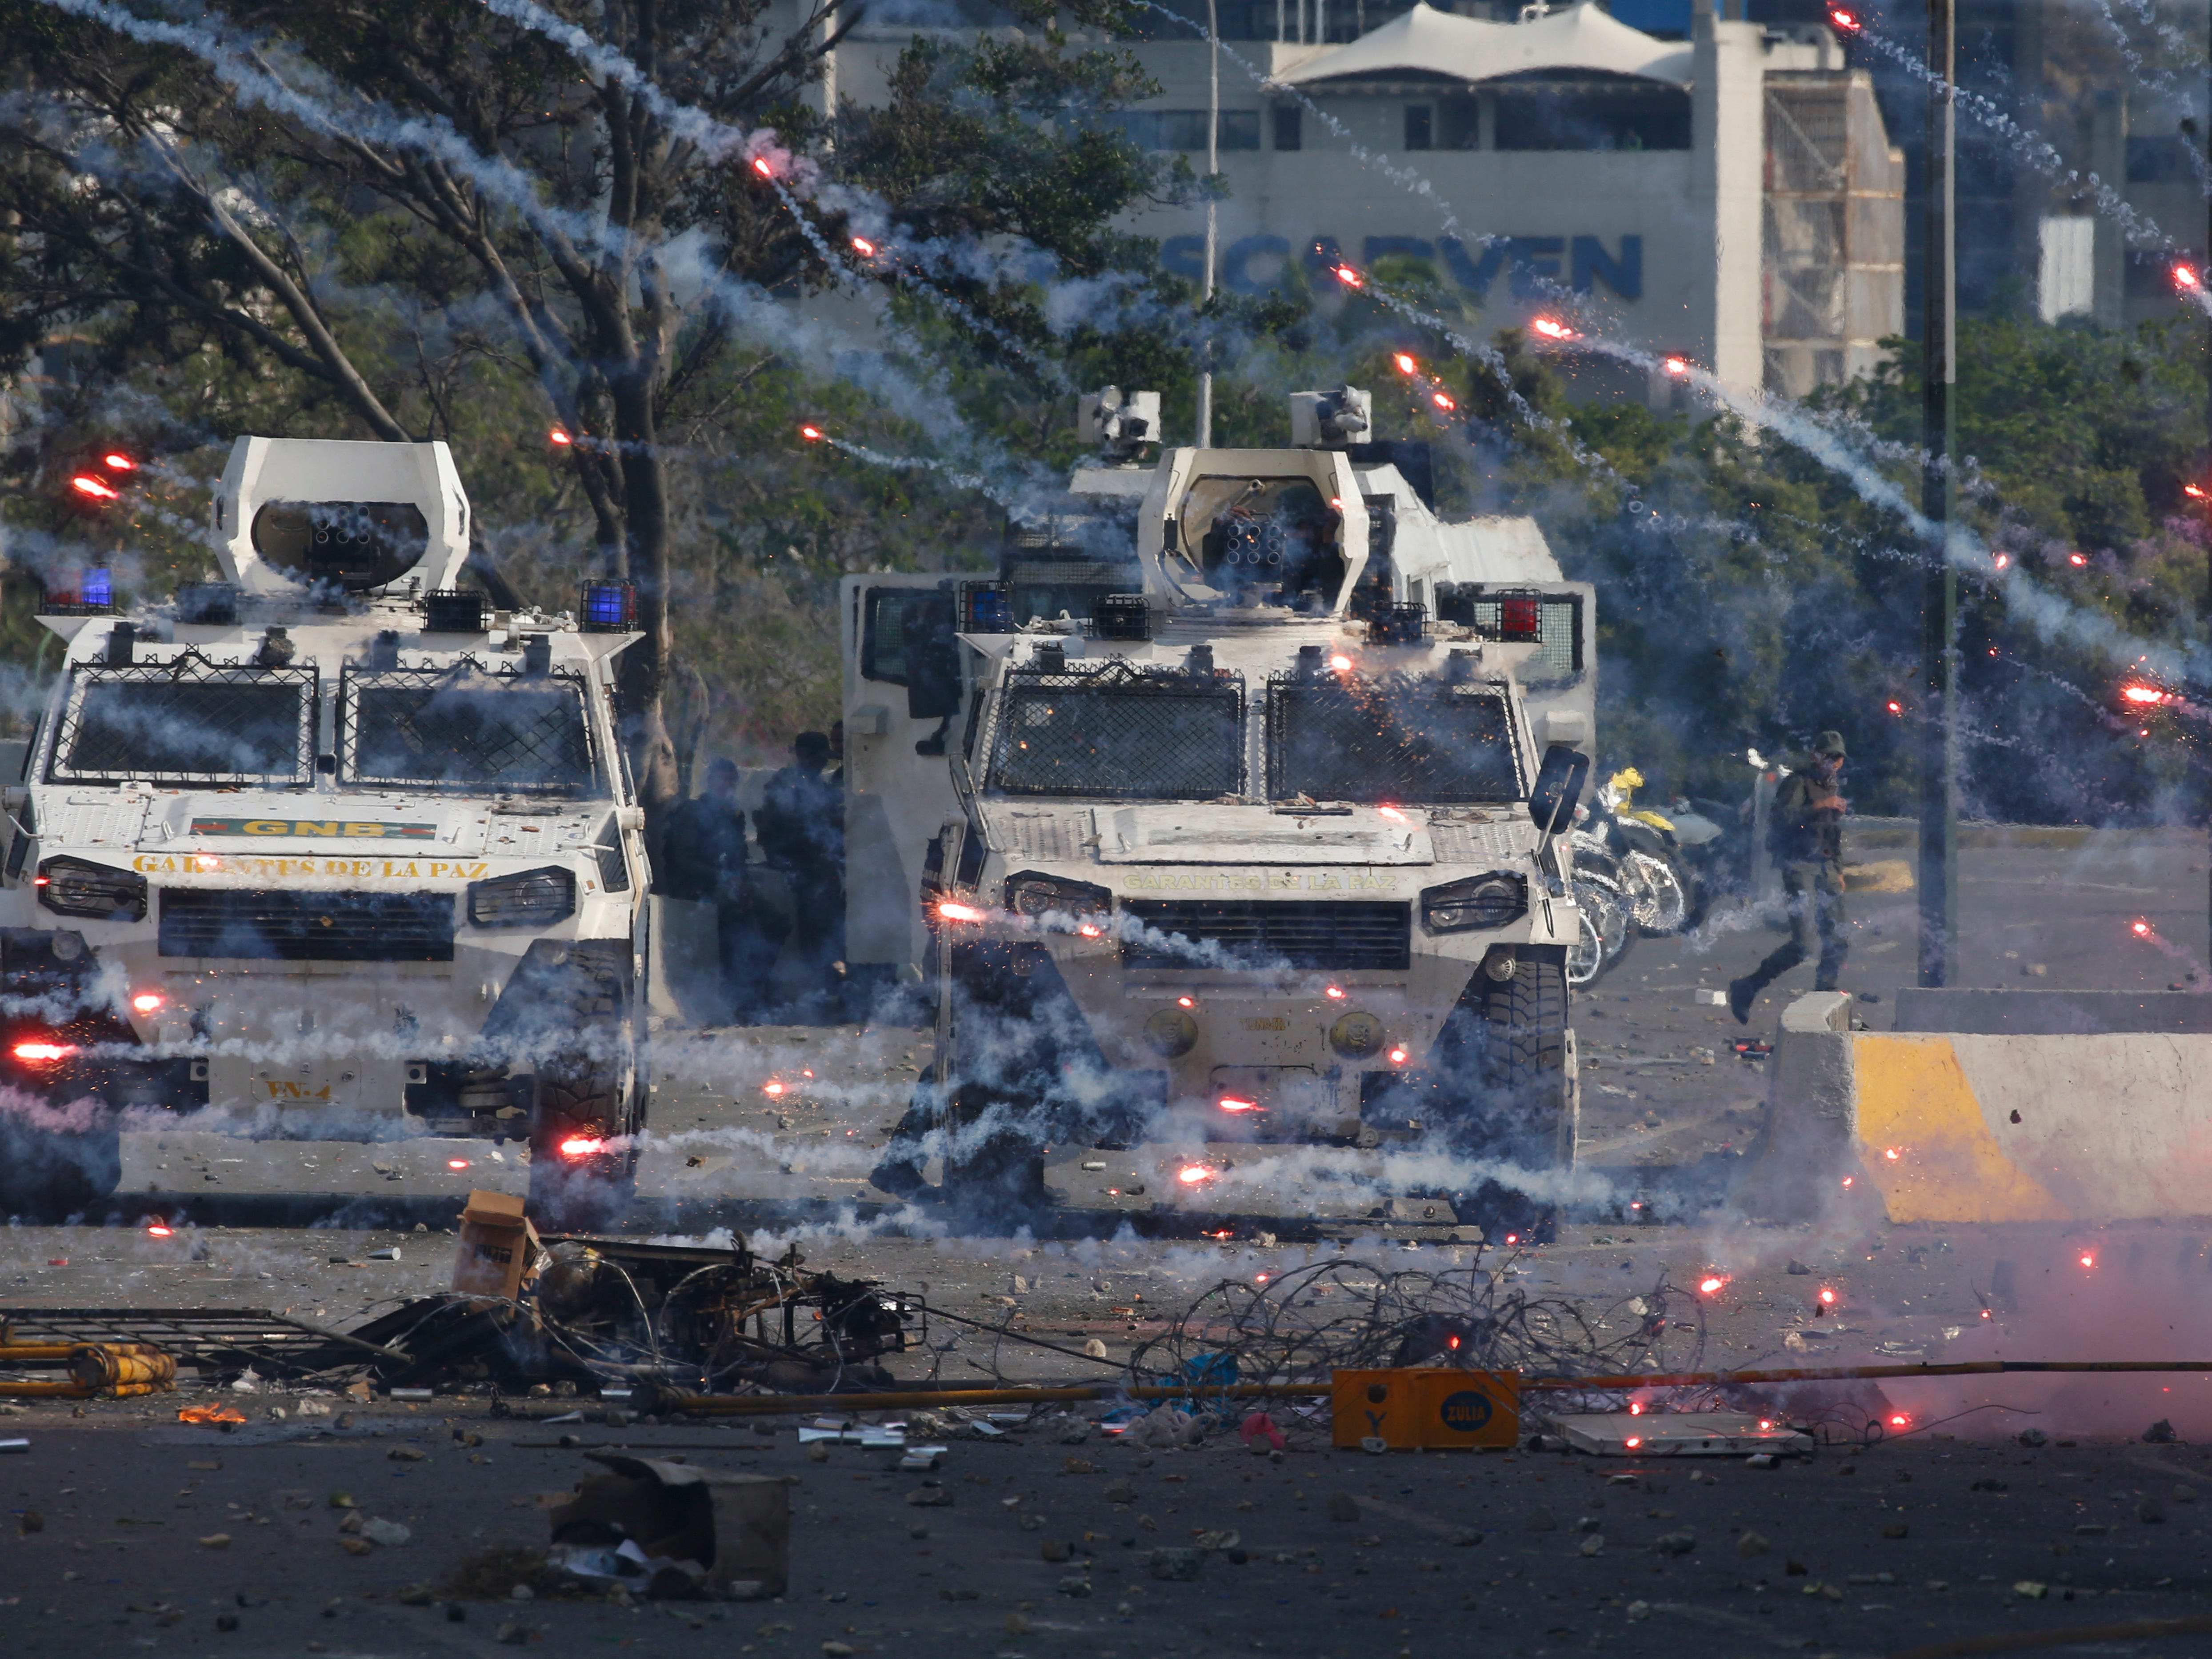 Fireworks launched by opponents of Venezuela's President Nicolas Maduro land near Bolivarian National Guard armored vehicles loyal to Maduro, during an attempted military uprising in Caracas, Venezuela, Tuesday, April 30, 2019. Opposition leader Juan Guaido took to the streets with a small contingent of heavily armed troops in a call for the military to rise up.